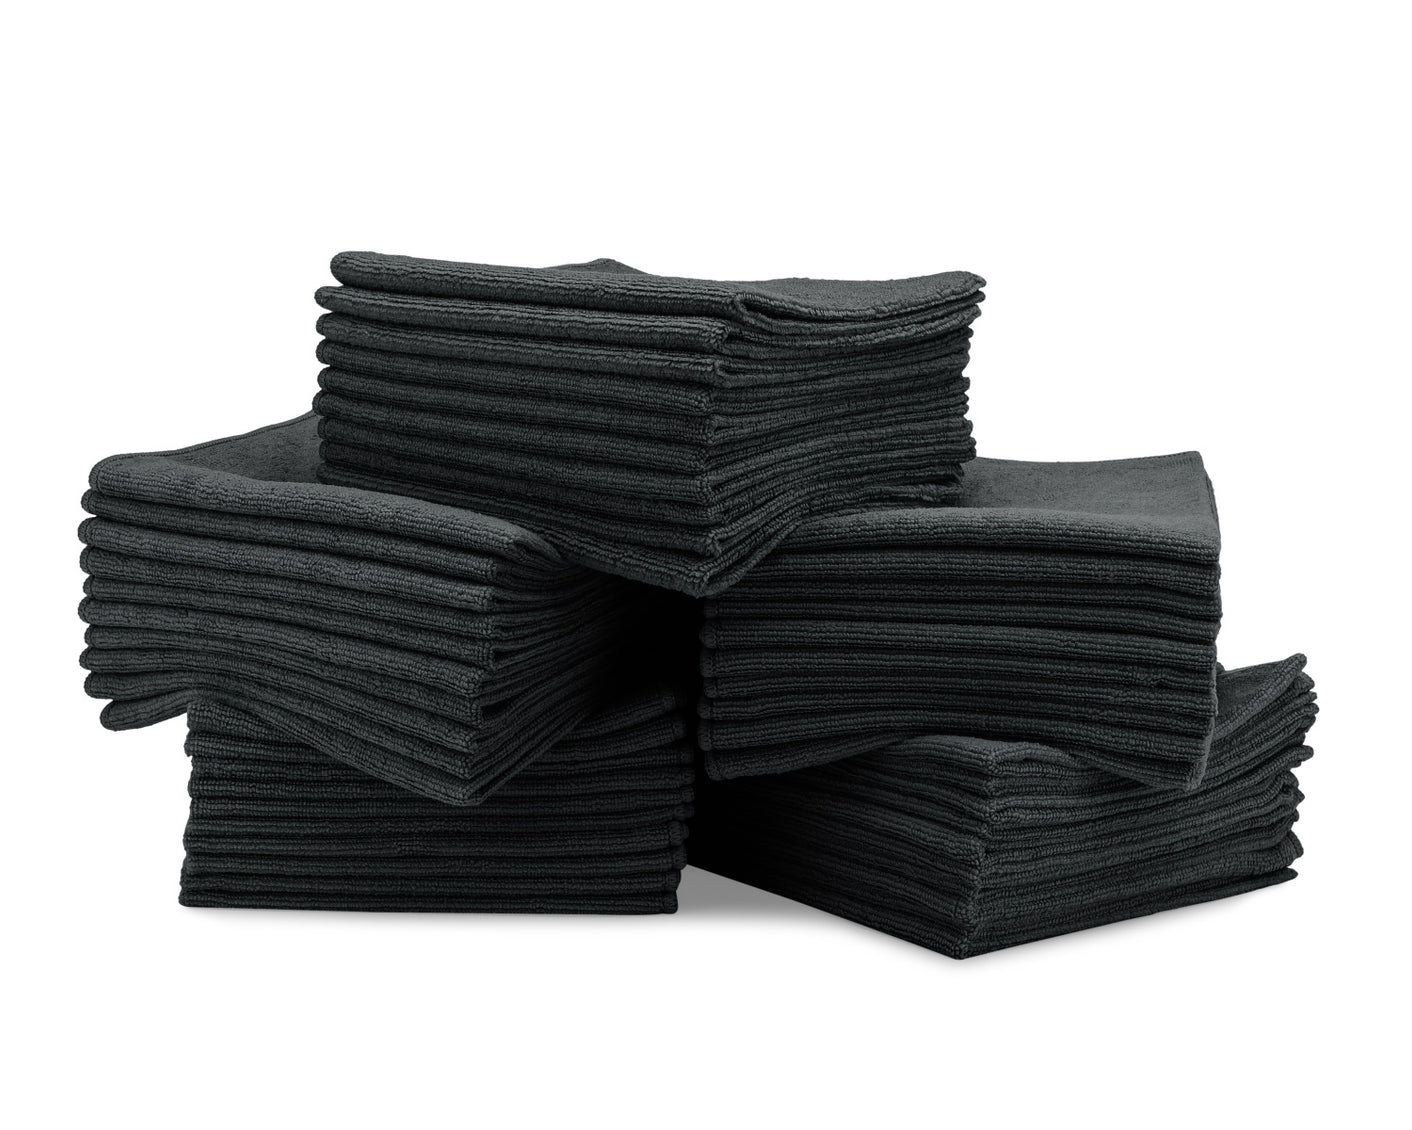 16 x 16 Microfiber Towels Bulk 50 Pack Black